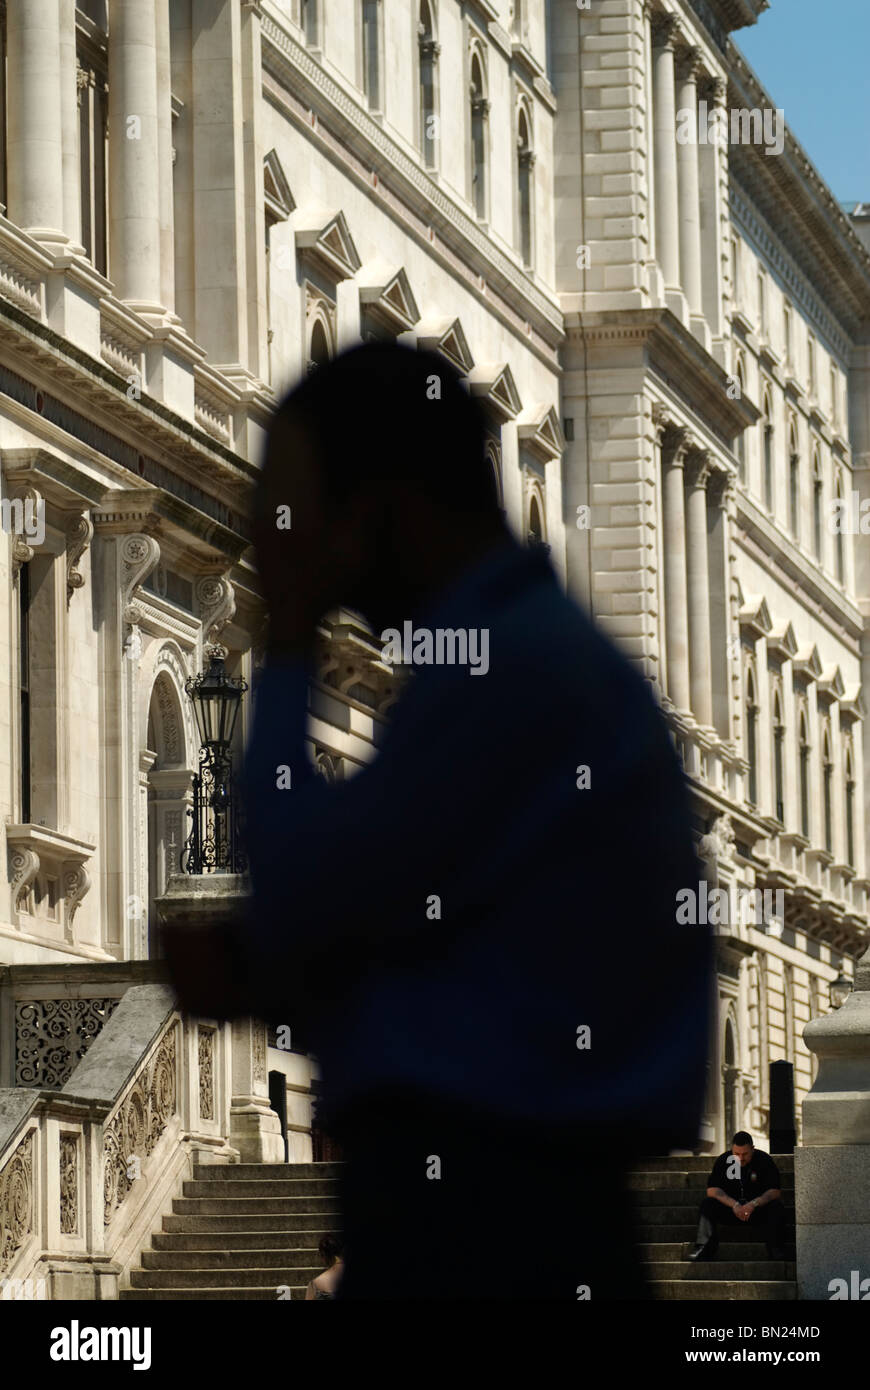 Civil Servants, outside The Foreign Office, 'Clive Steps' 'King Charles Street' Whitehall London - Stock Image